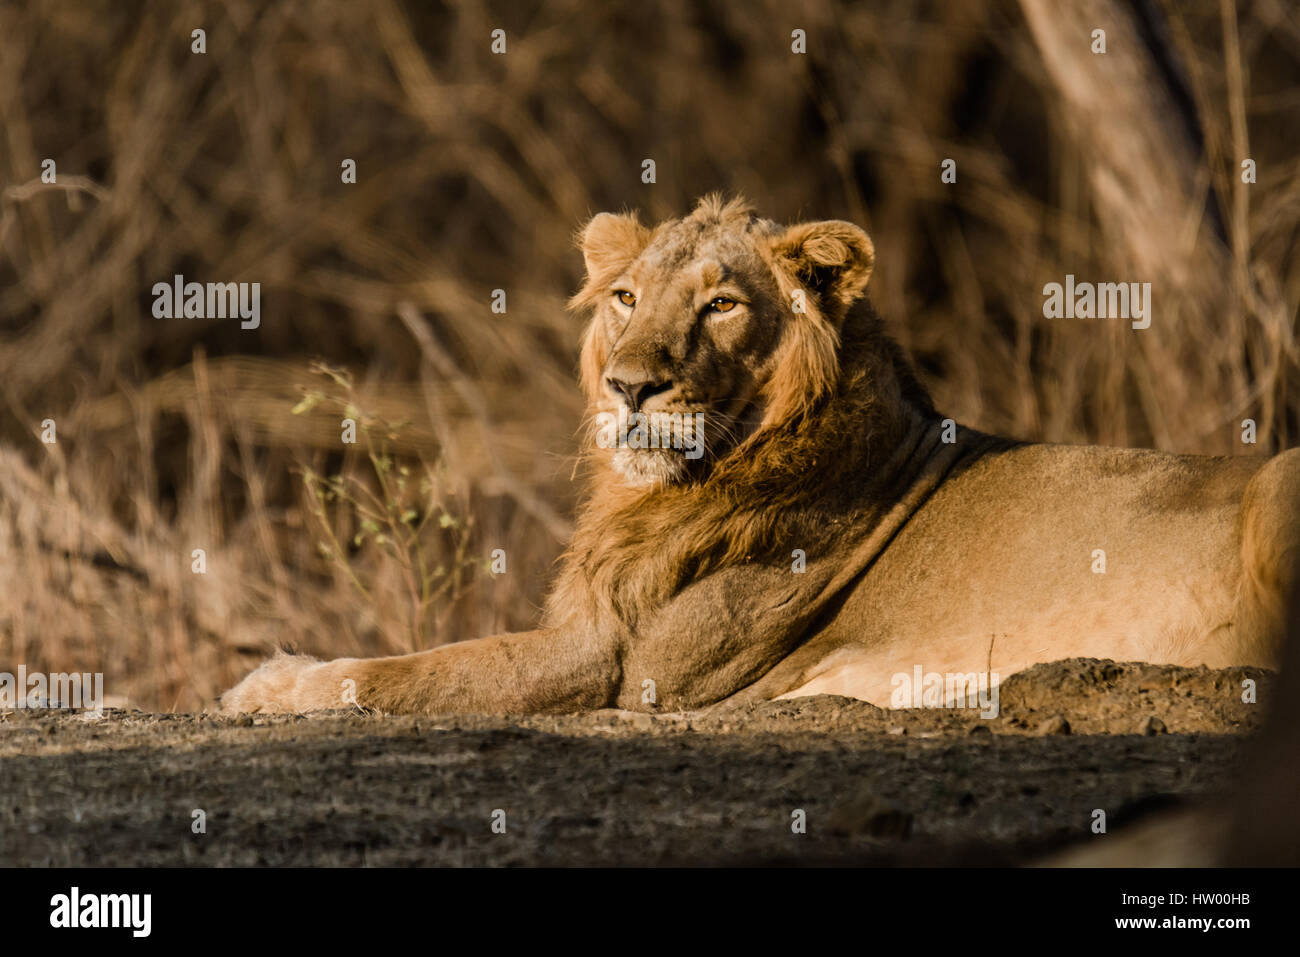 Asiatic Lion resting - Stock Image